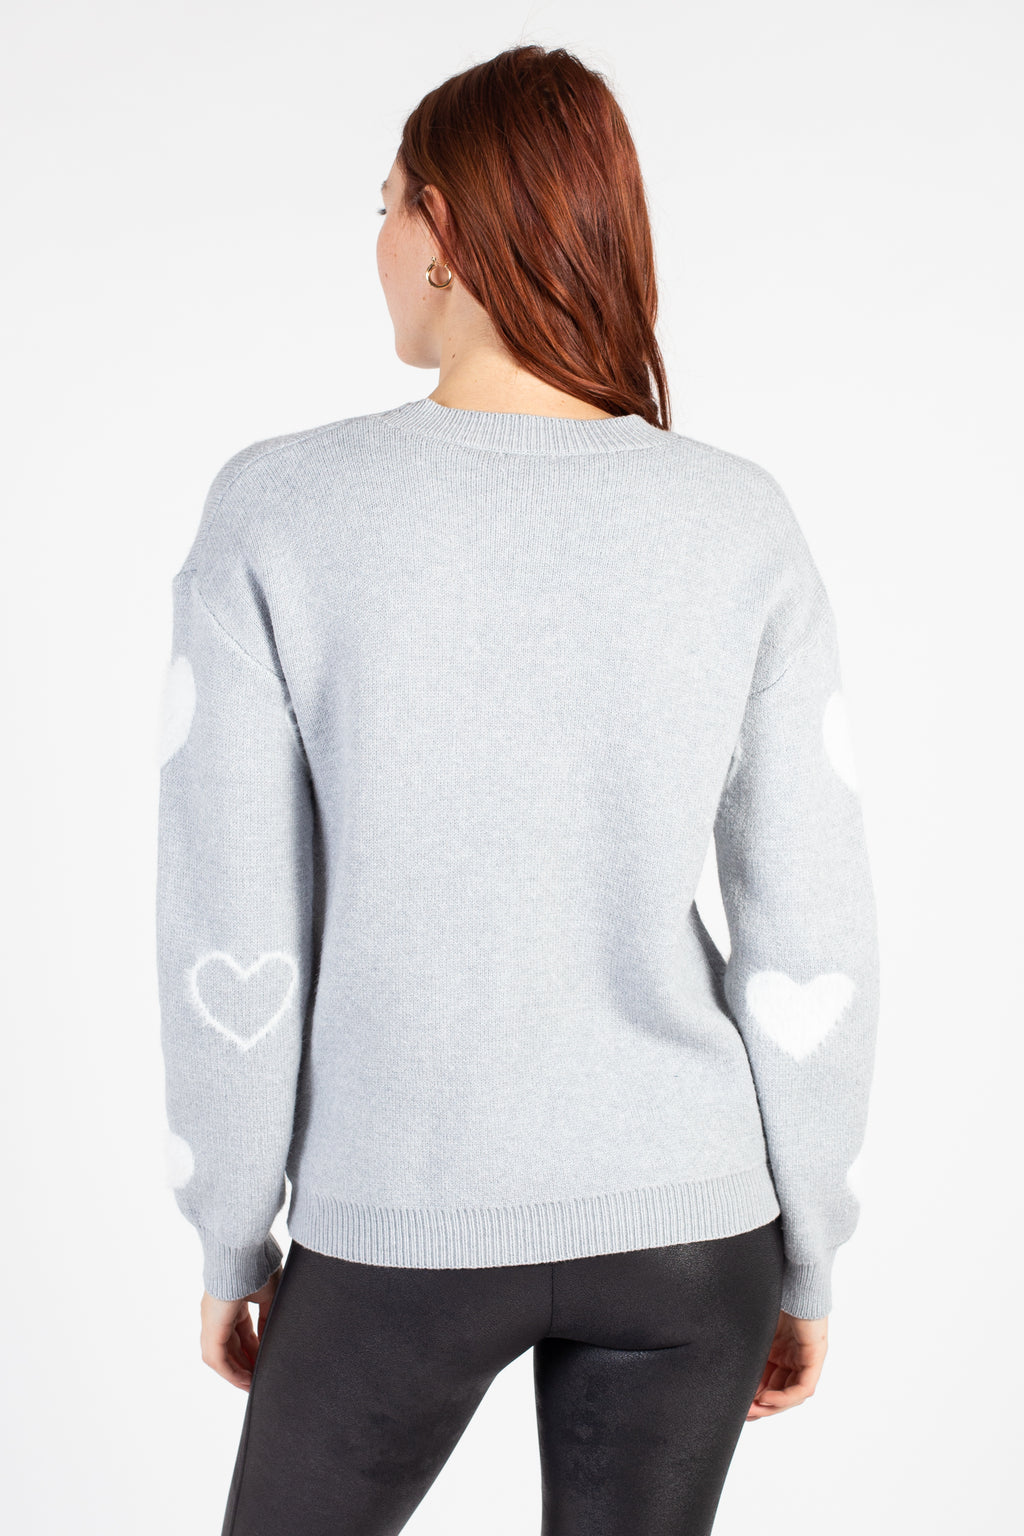 Aniya Fuzzy Hearts Sweater